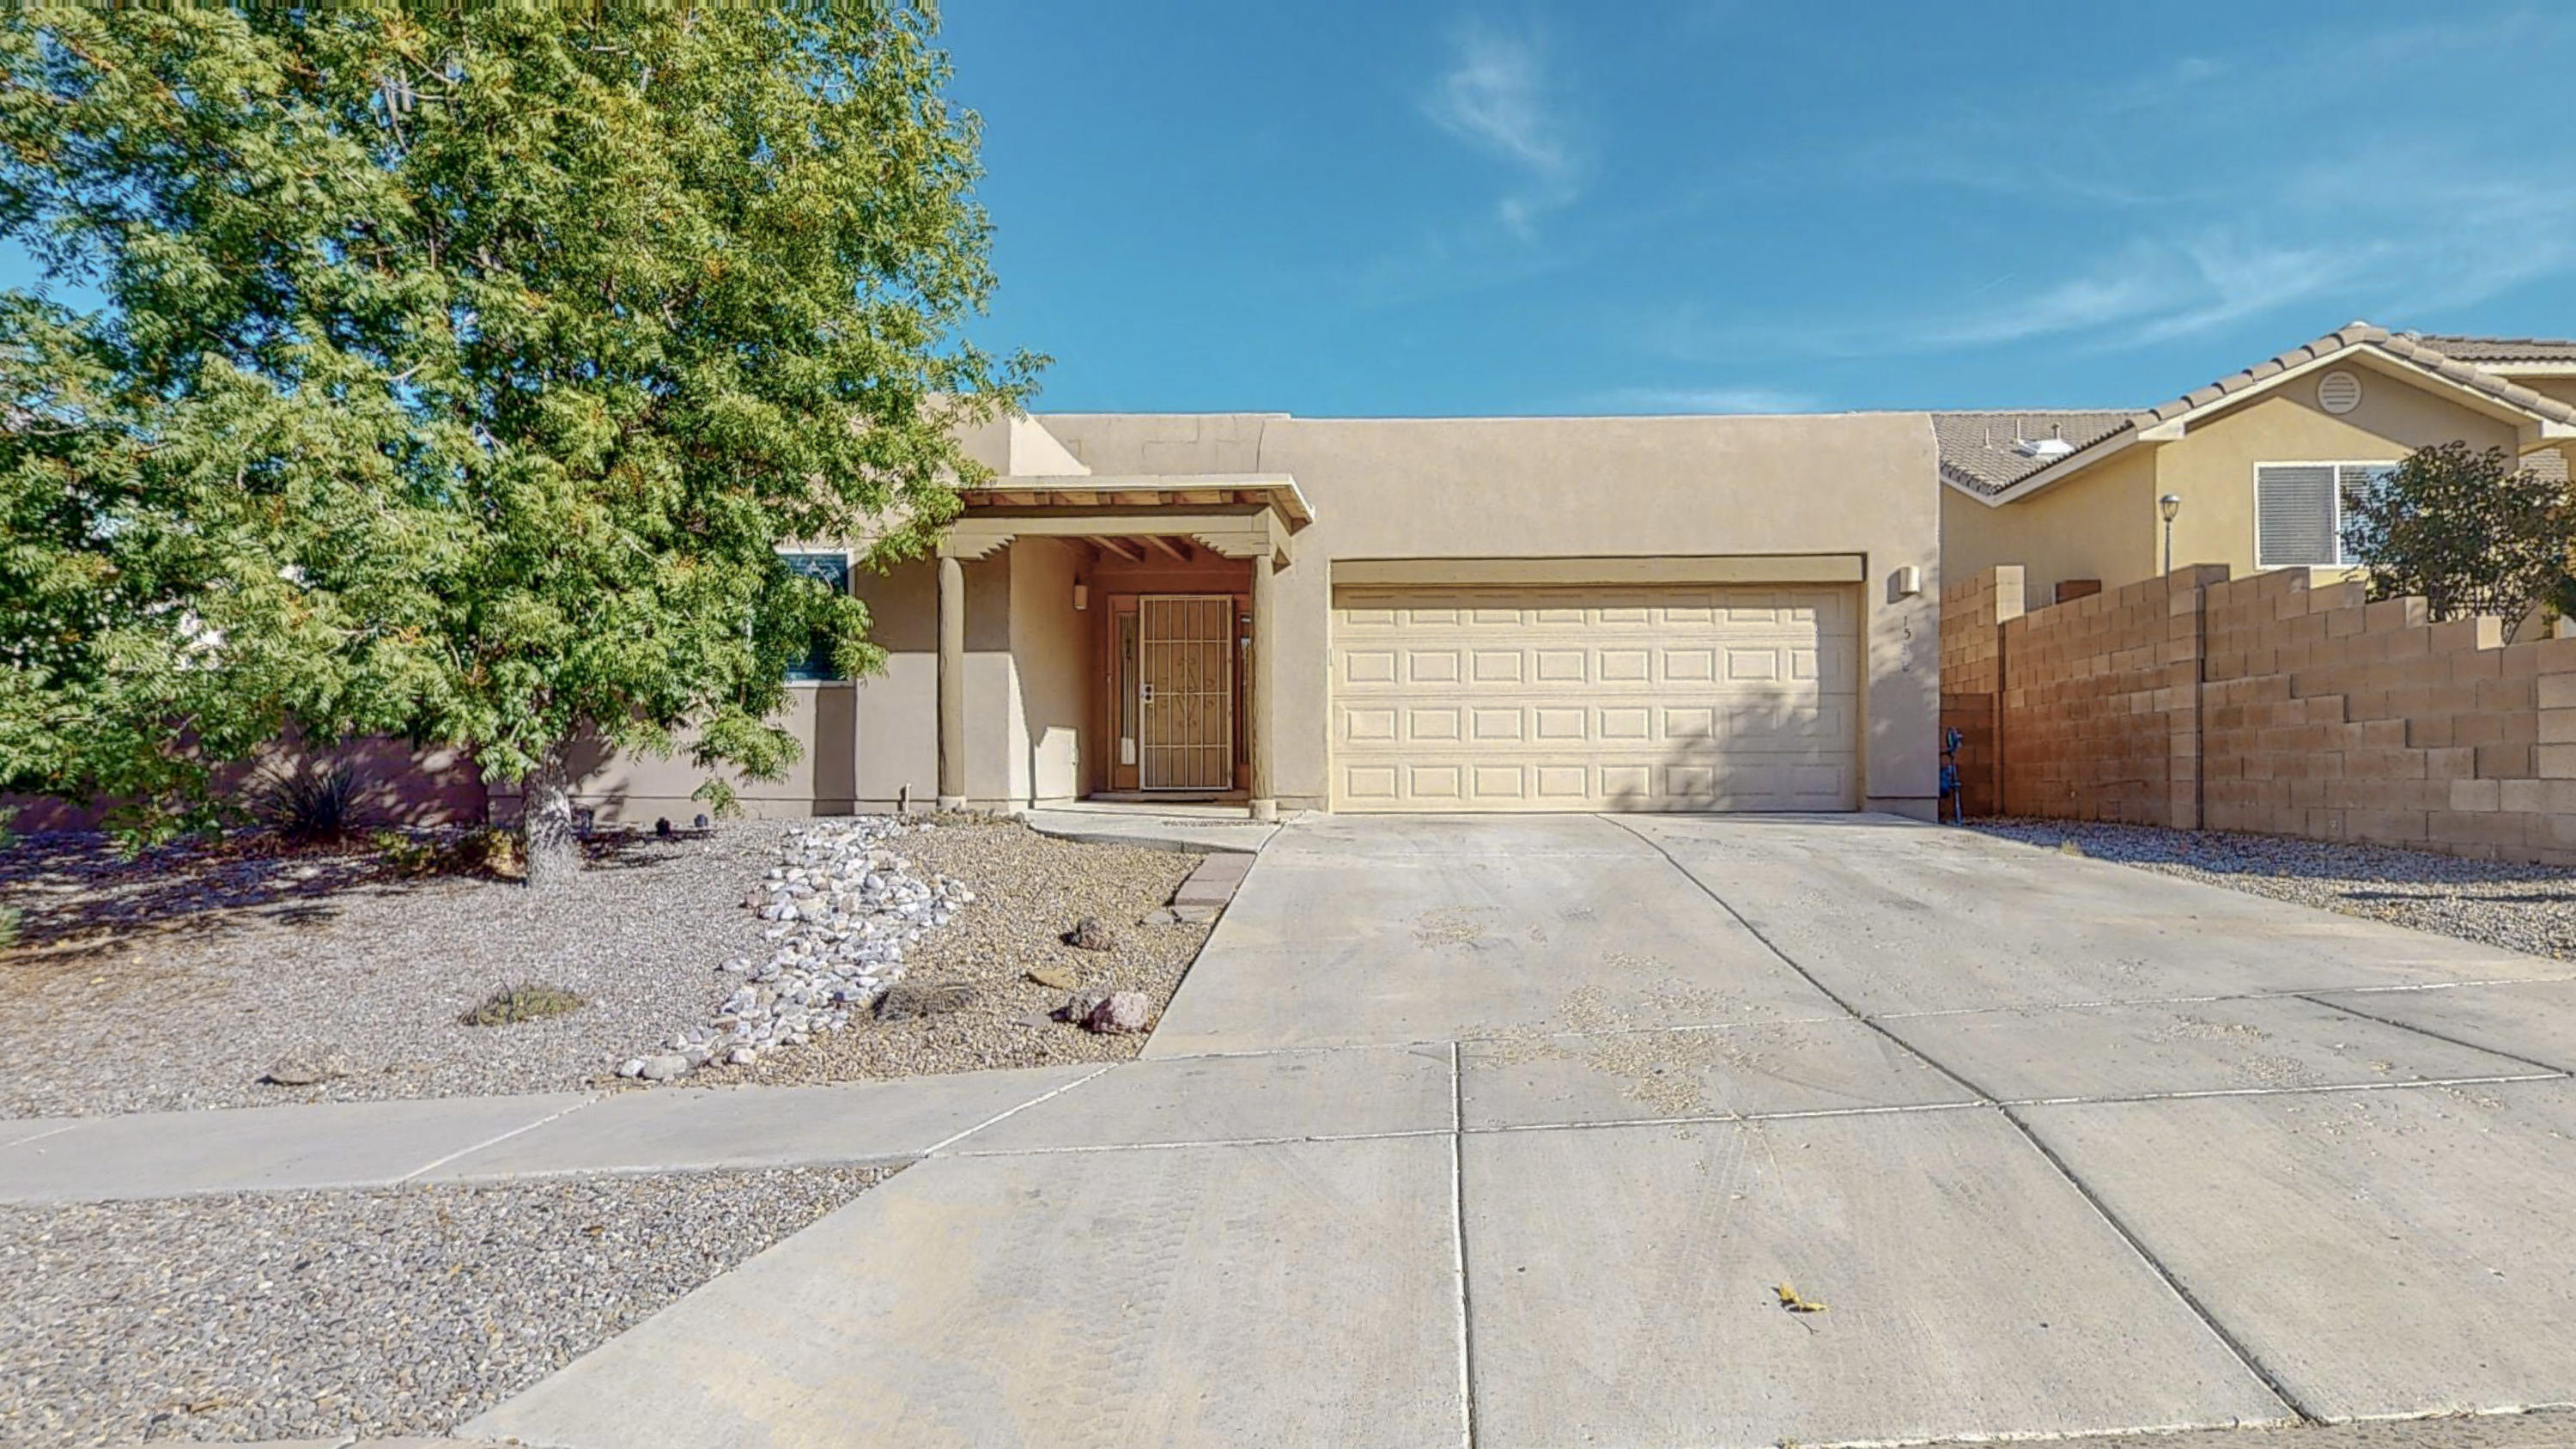 Single story 4 BR in private hillside community!  This spacious one story can be found in the hillside community of Loma Pinon.  This community is known for its privacy and larger sized lots.  Features of the home include:**One story living with master bedroom separate from the secondary bedrooms**Refrigerated air conditioning**Central gas heat**Nice high ceilings throughout**Gas fireplace in the living room**Amazing master suite bathroom!!**This home is move in ready and just waiting for a new owner!